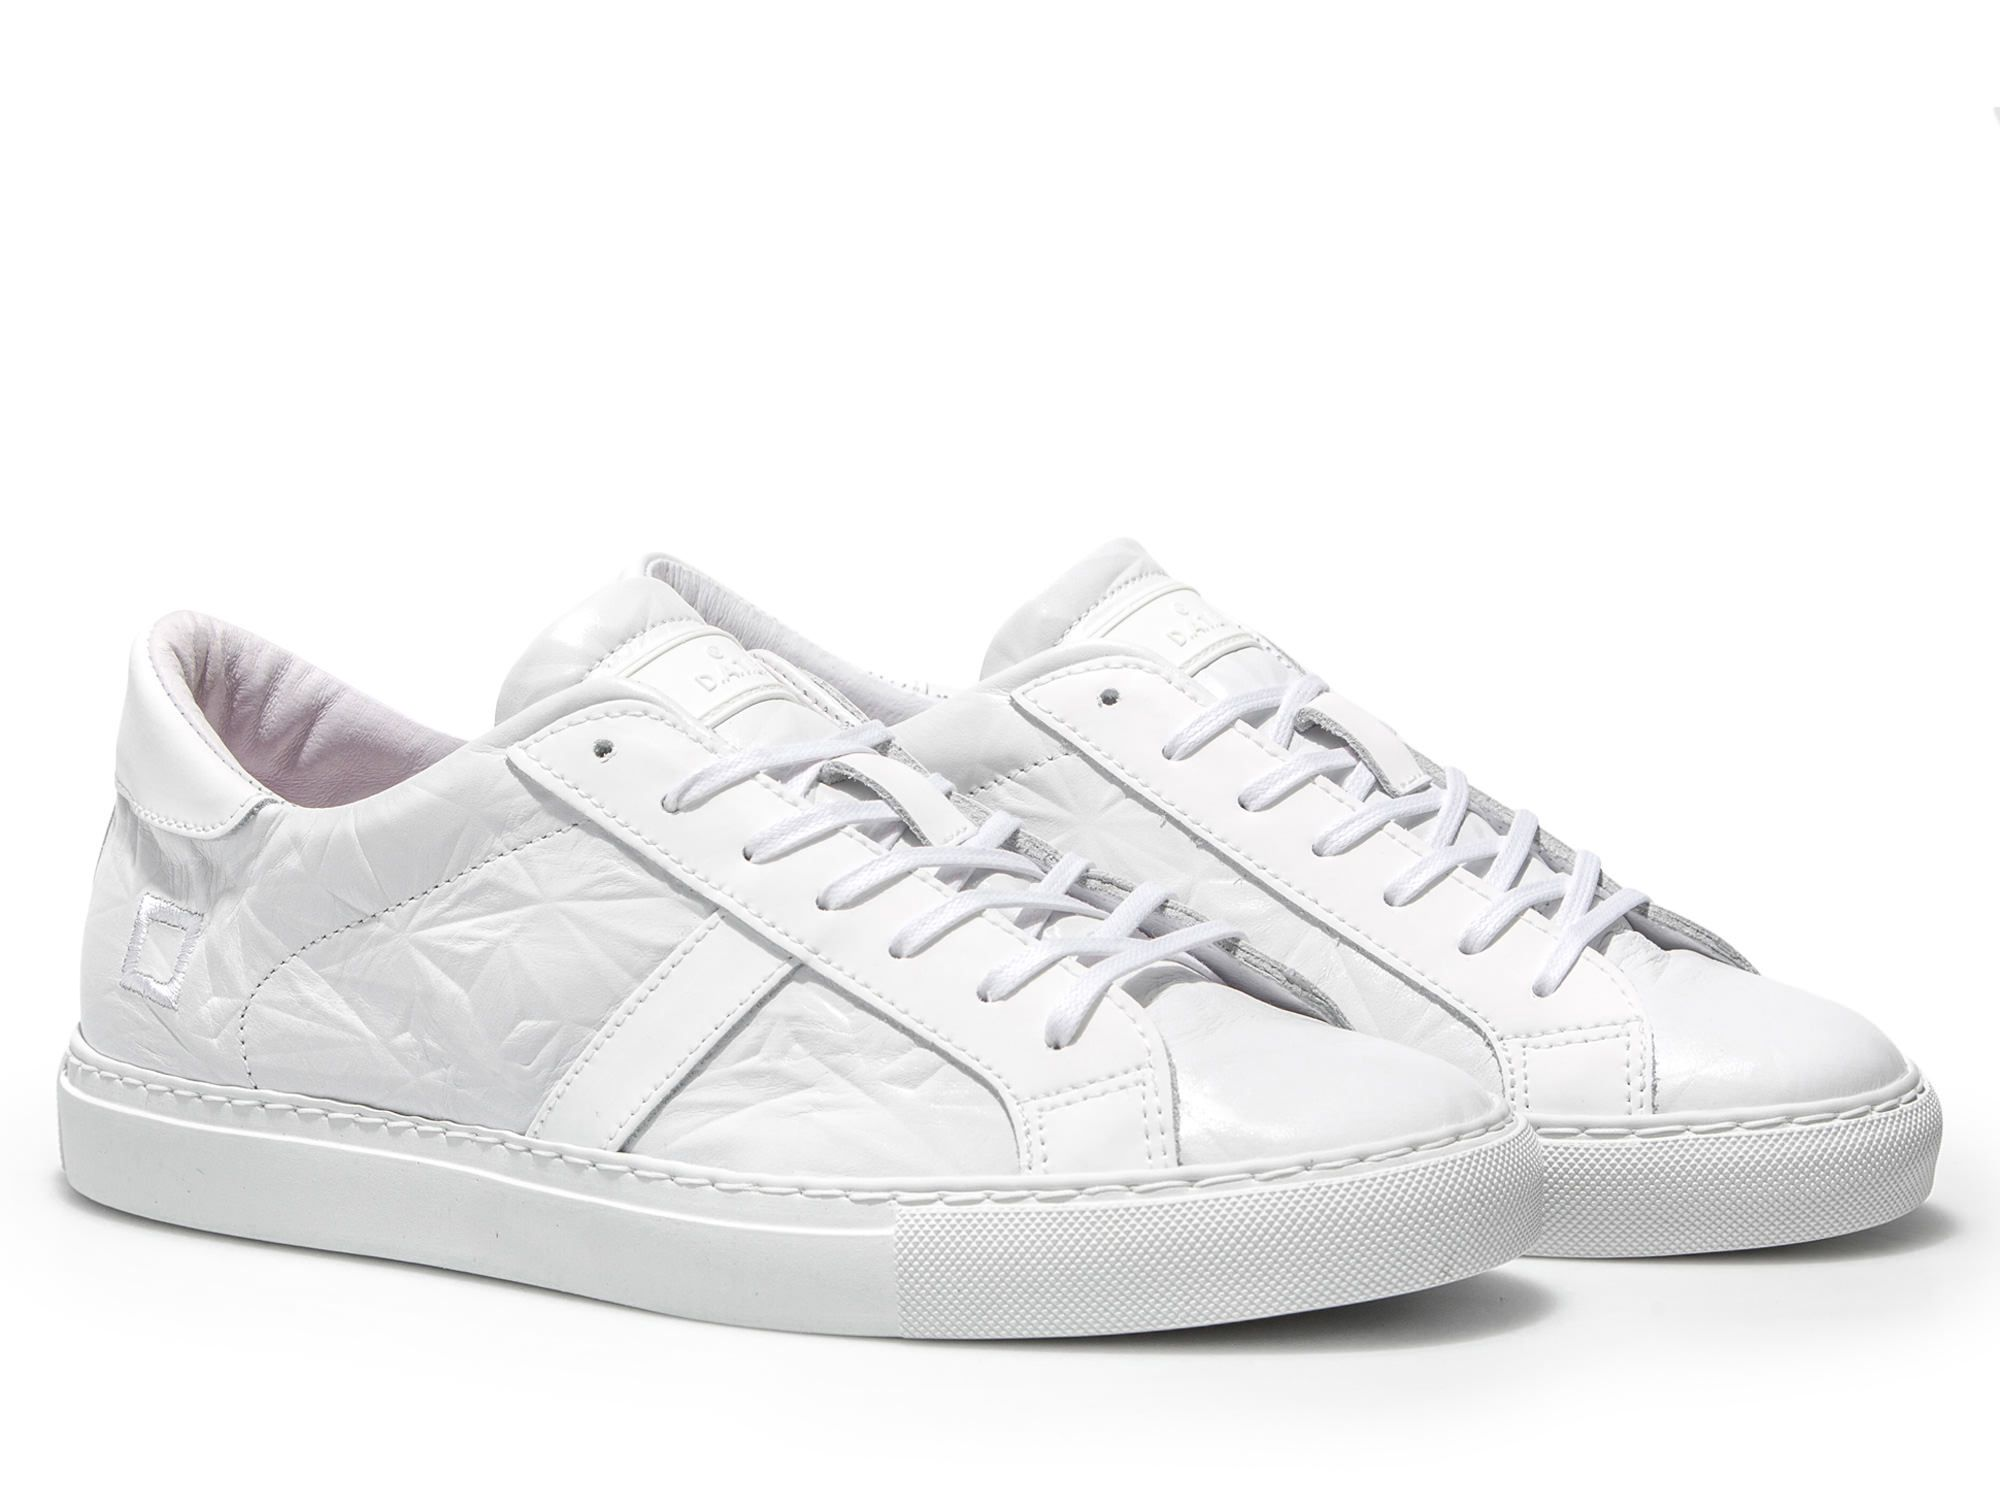 D.A.T.E. Sneakers NEWMAN LOW 3D WHITE | Date shoes